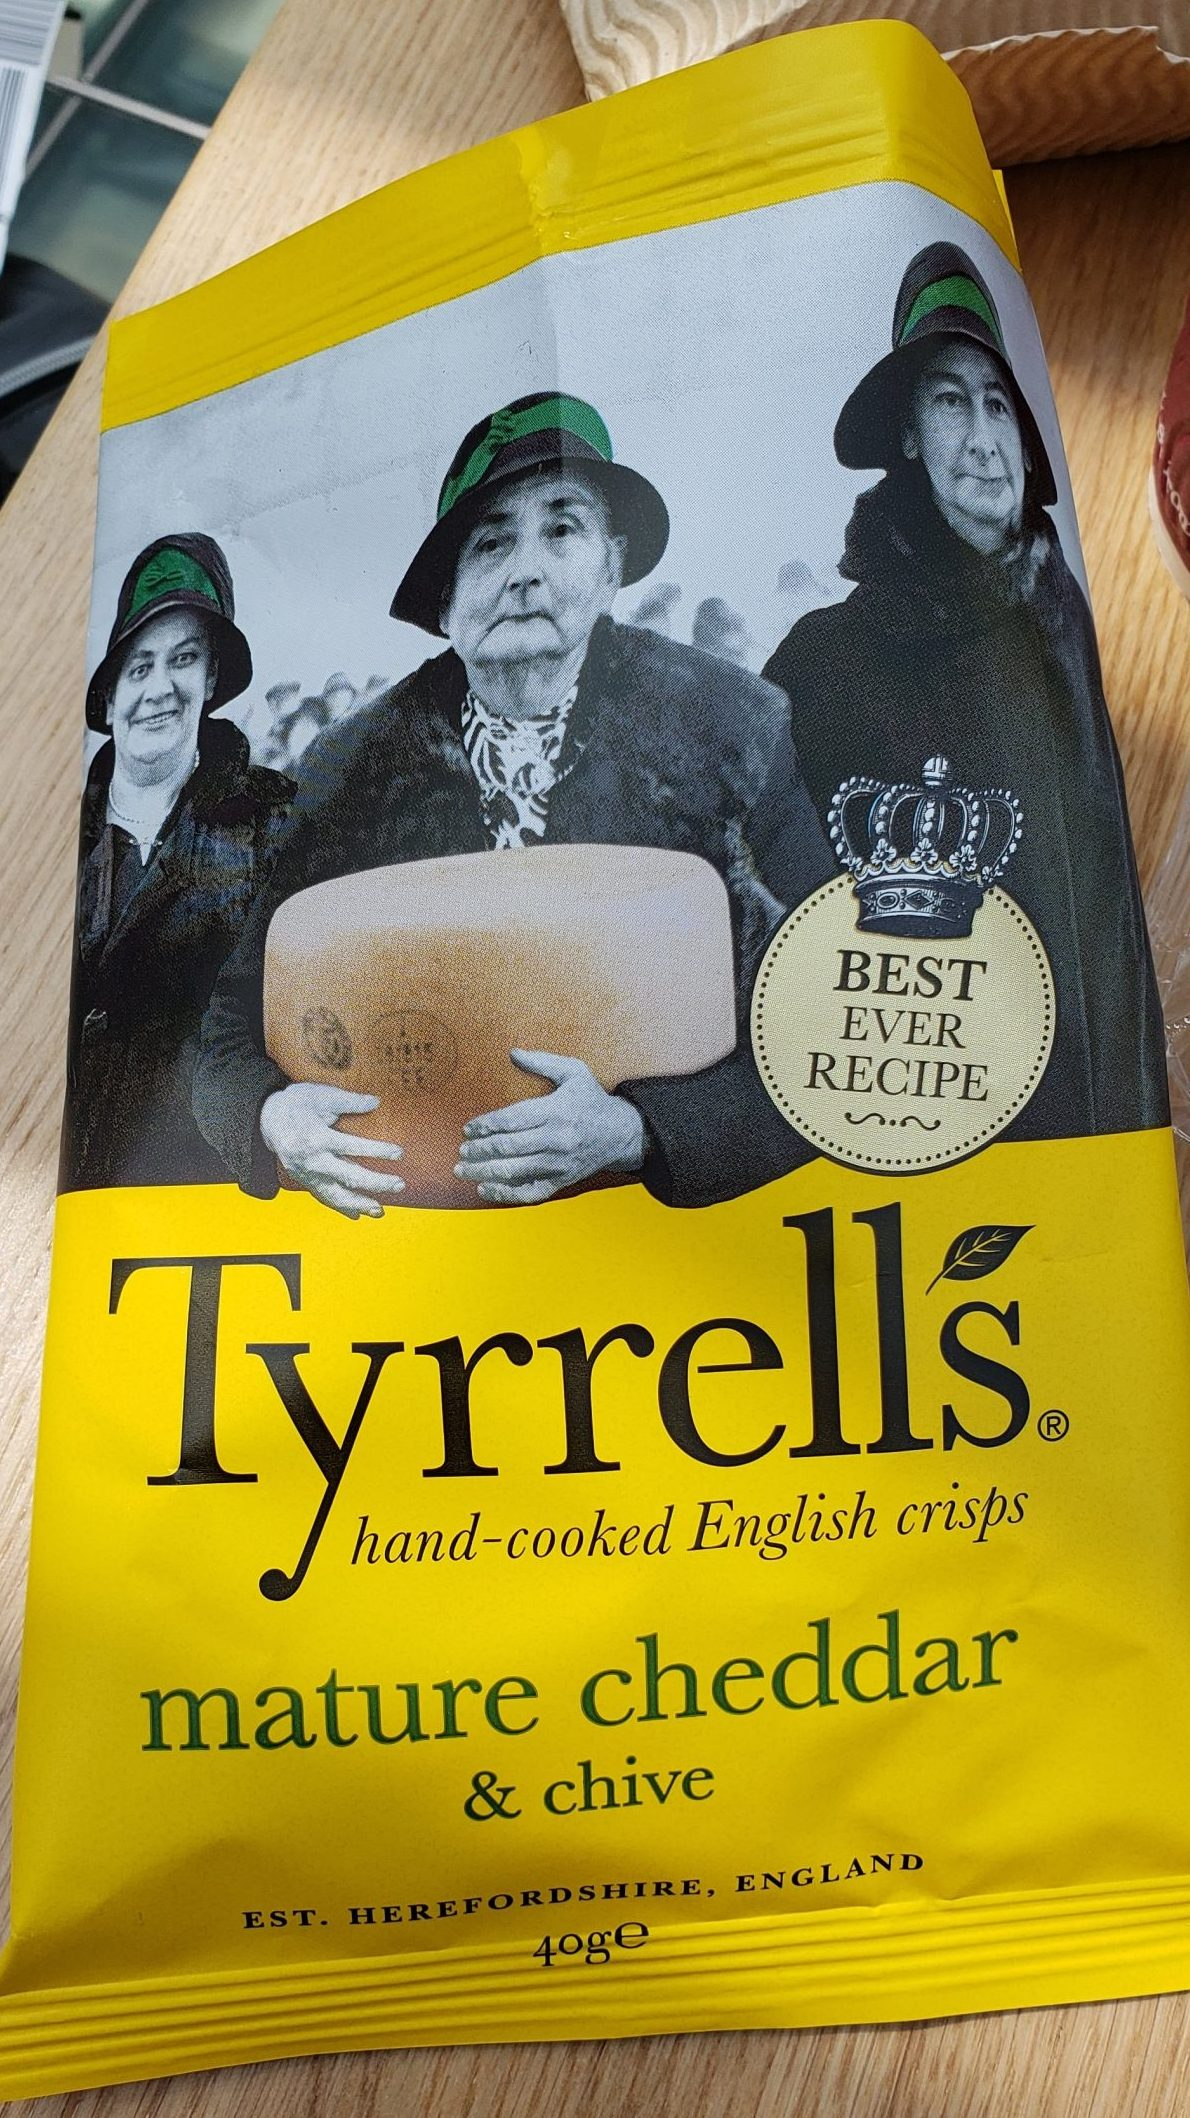 Potato chip bag highlighting a black and white photo of moderately grumpy old women holding a wheel of cheese